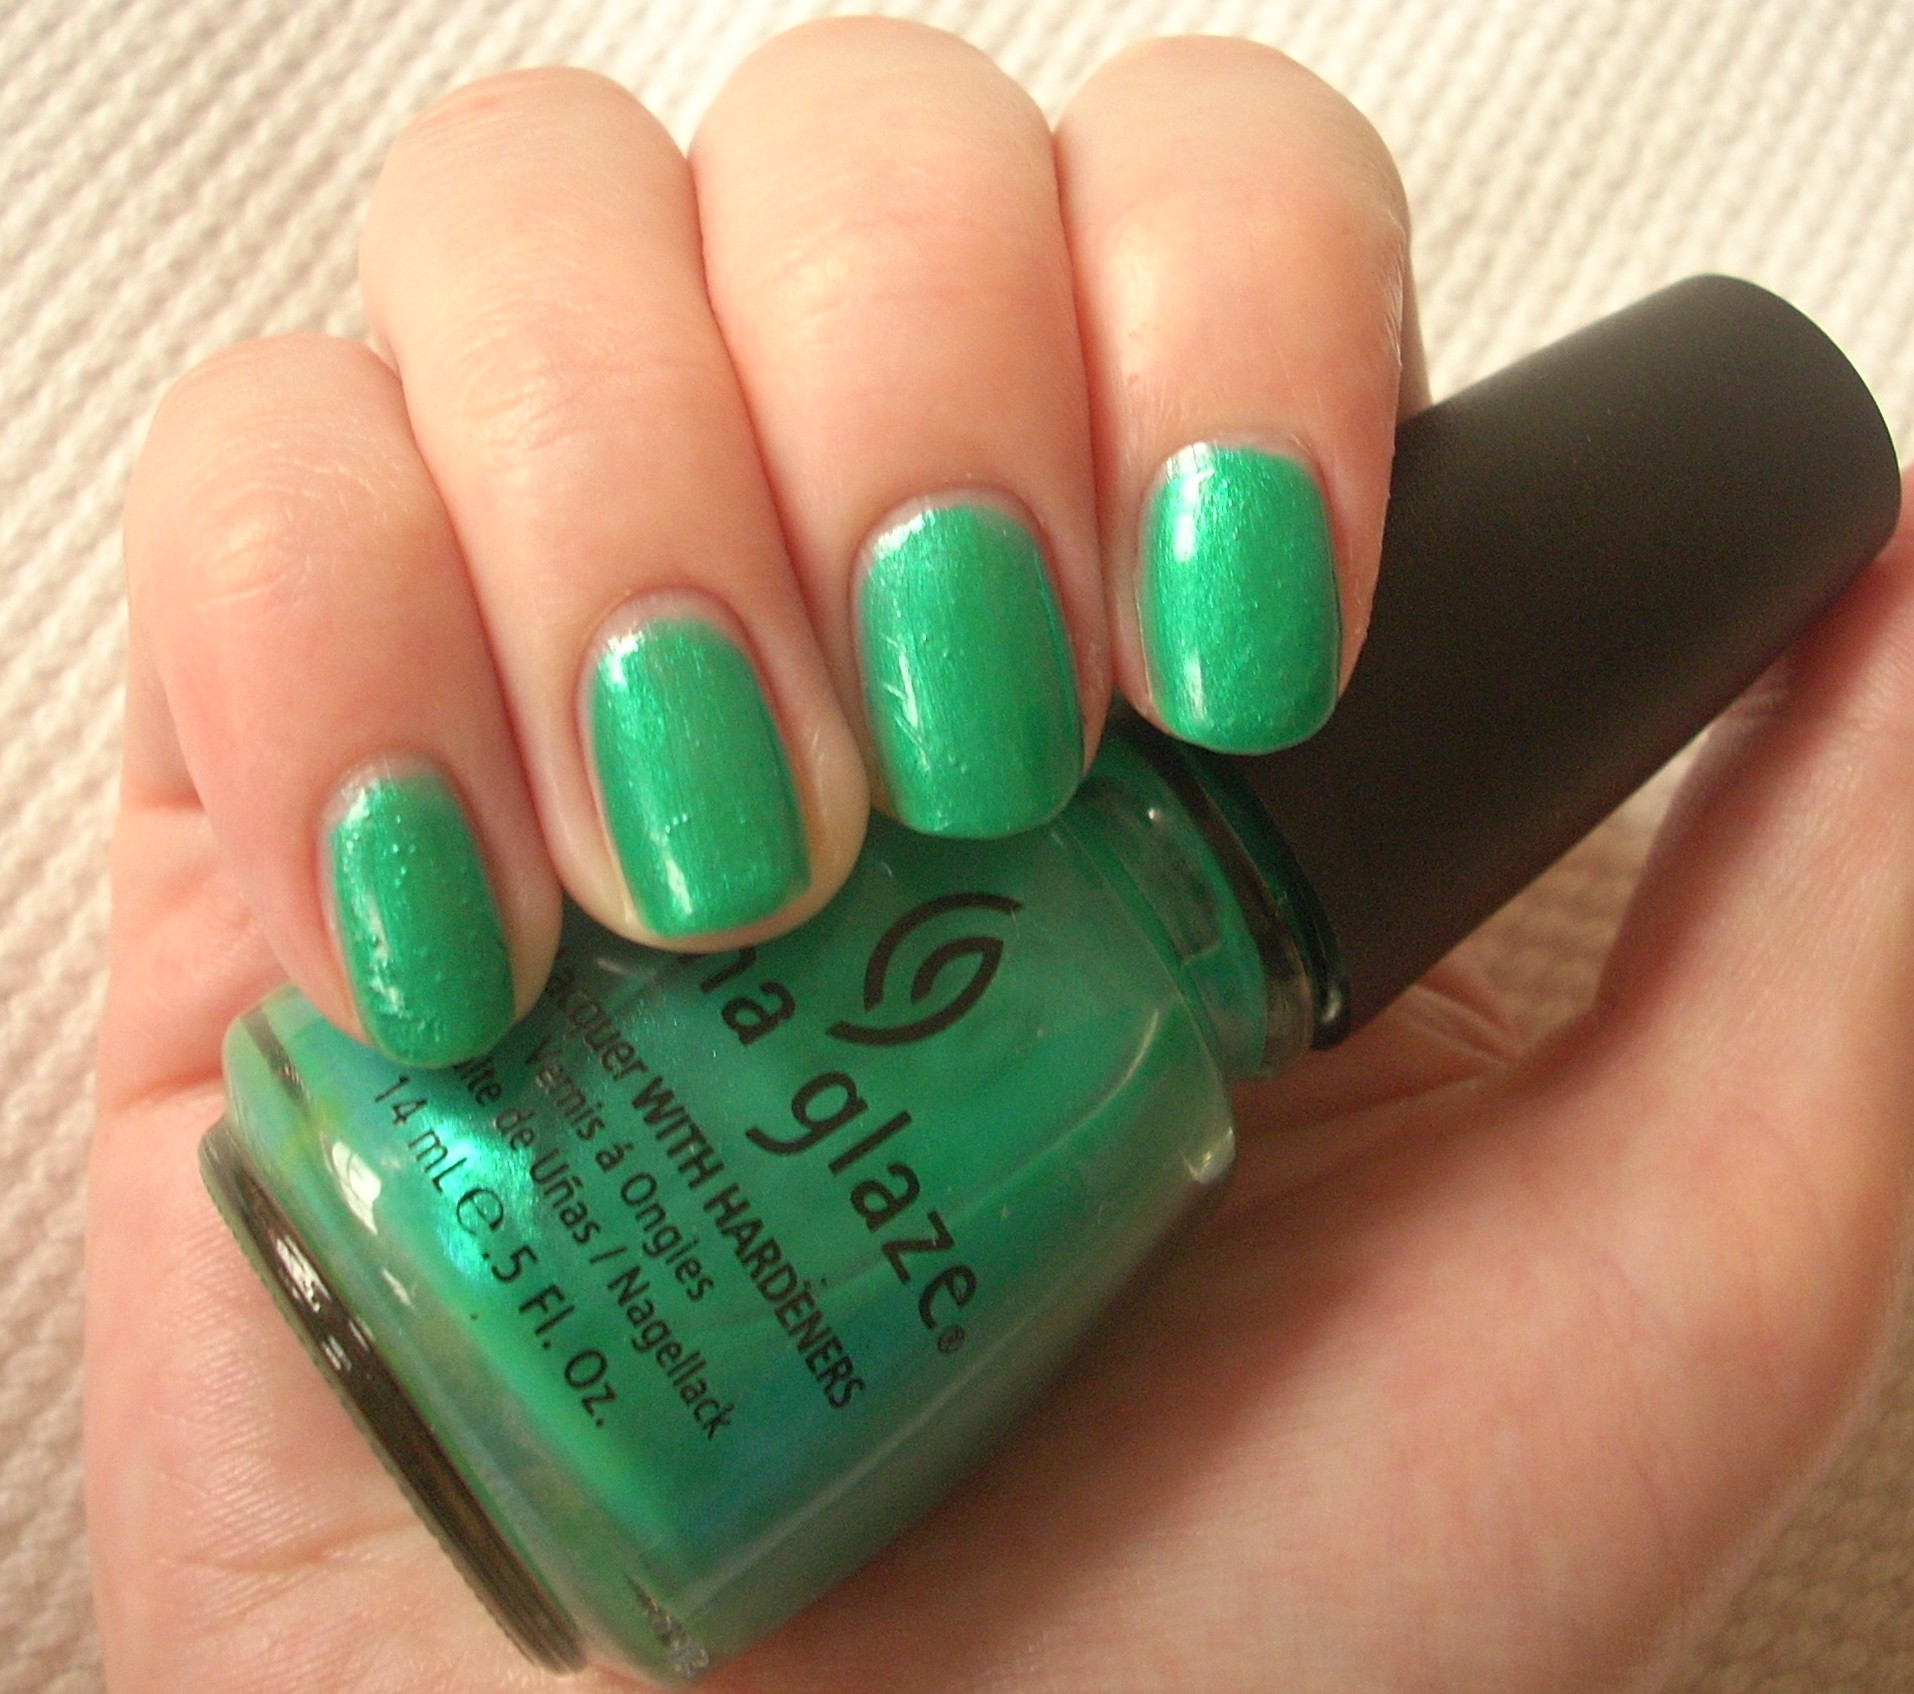 China glaze passion in the pacific nail polish review through the nvjuhfo Gallery